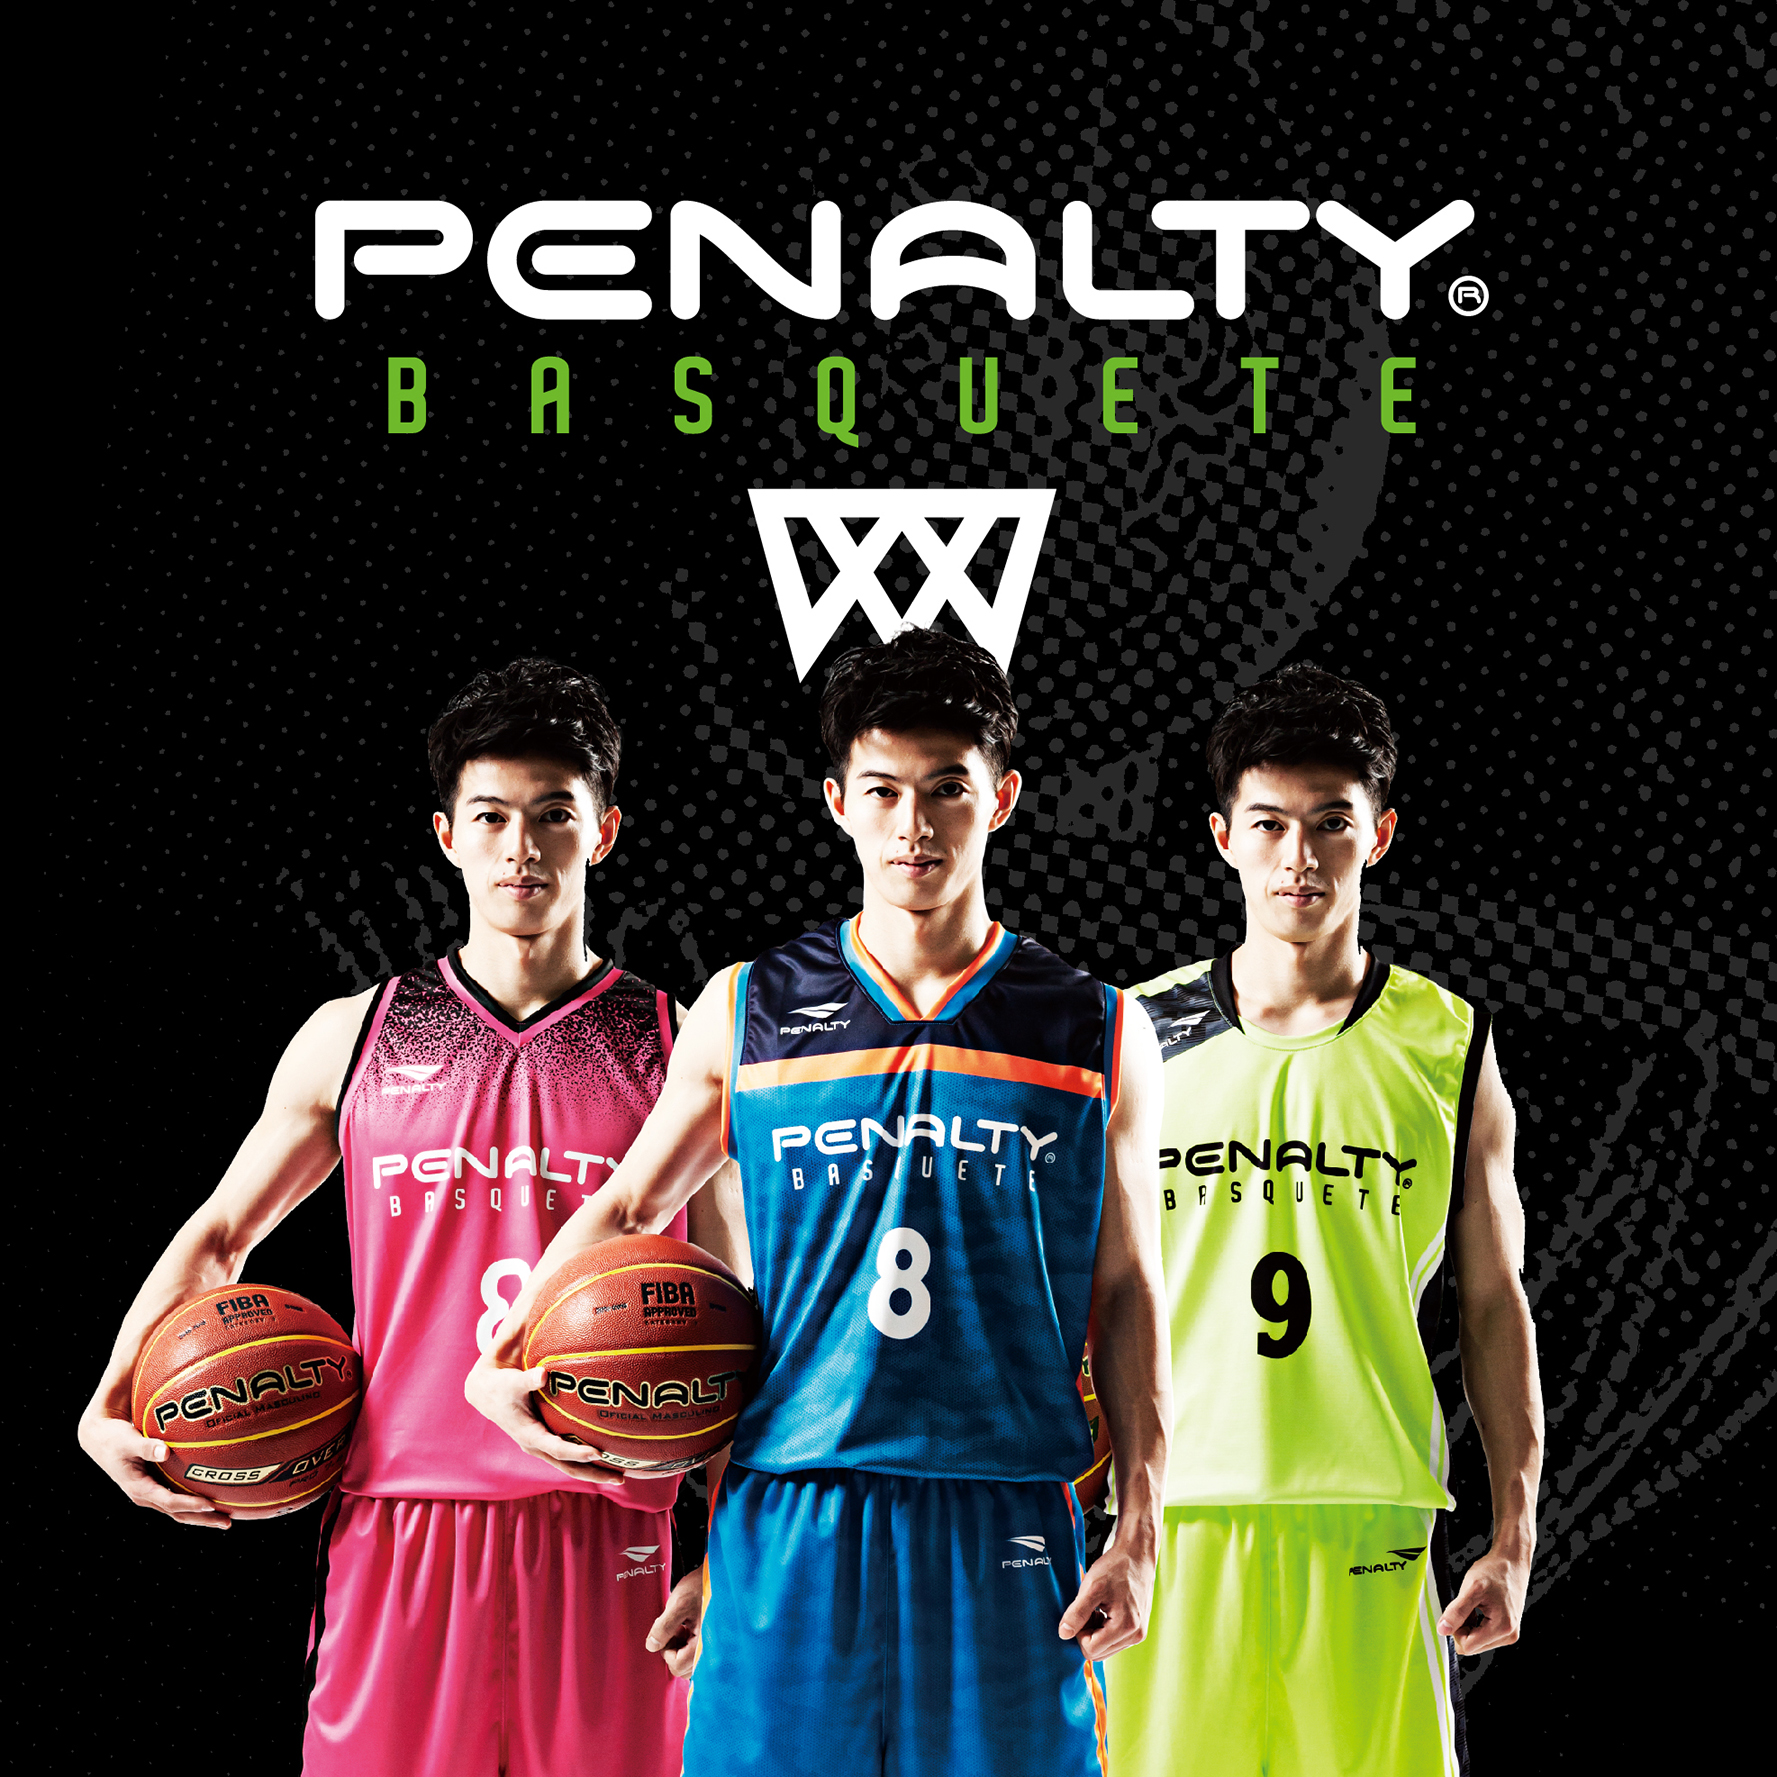 PENALTY BASQUETEのHP公開!!